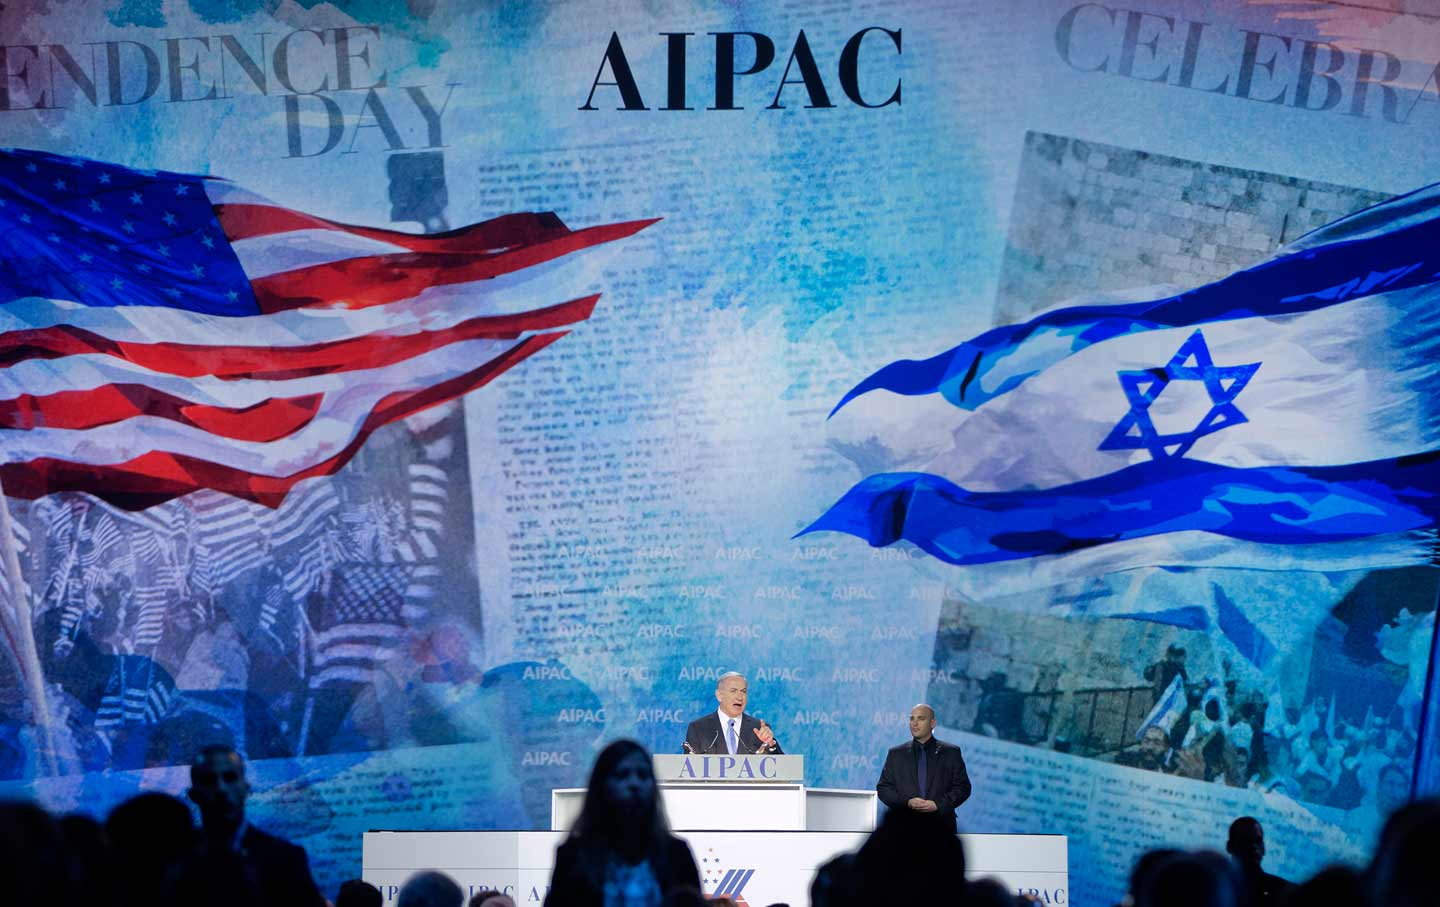 AIPAC_Conference_AP_img